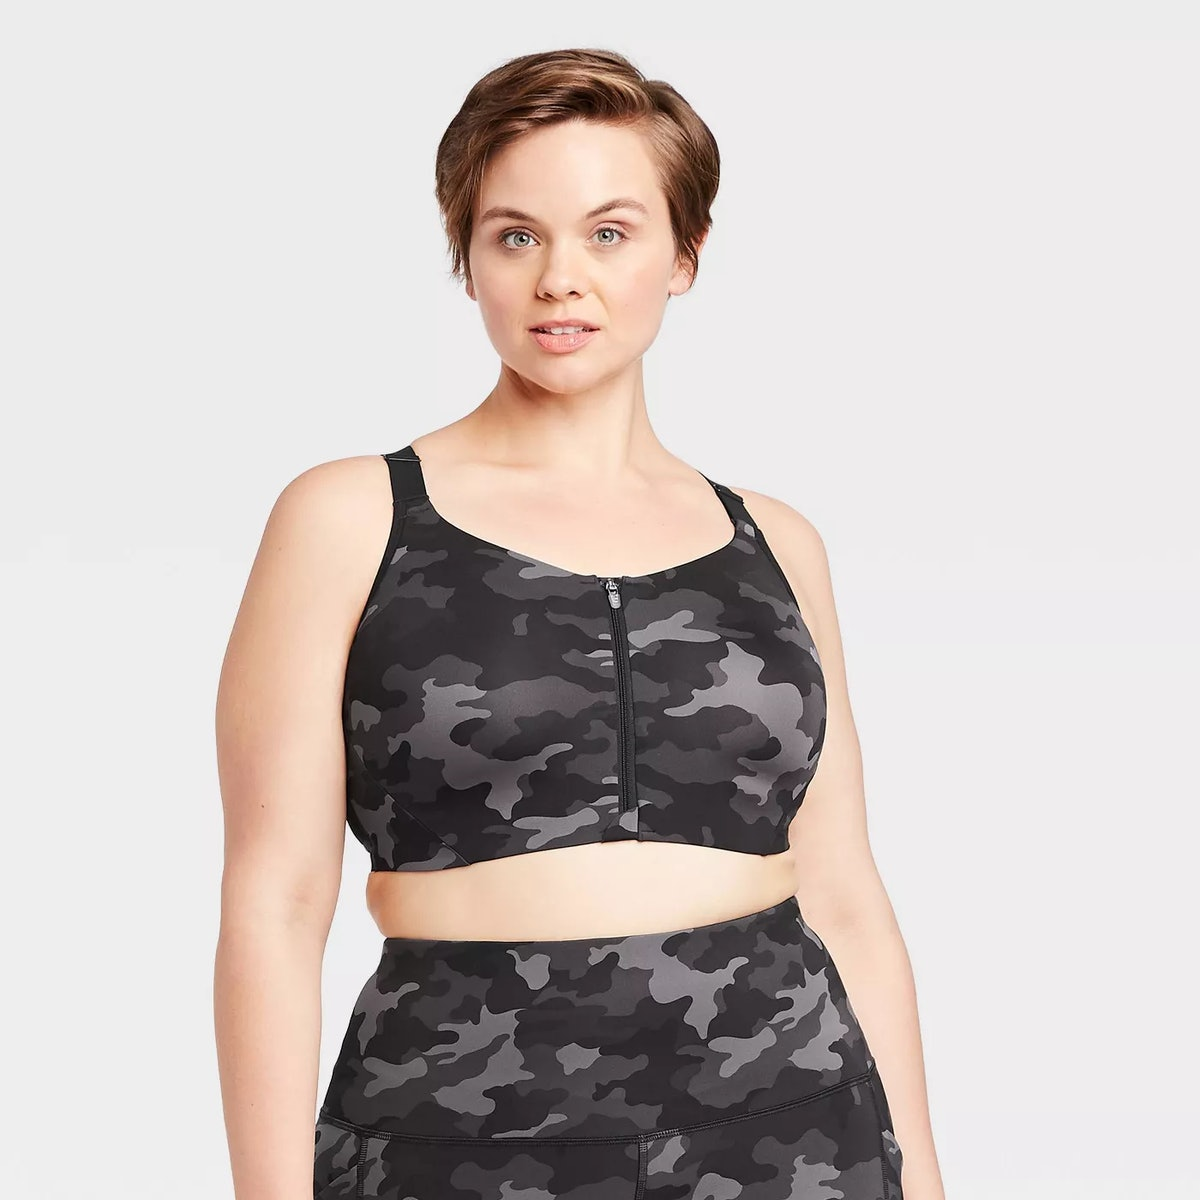 All In Motion Women's Plus Size Camo Print High Support Zip Front Bra